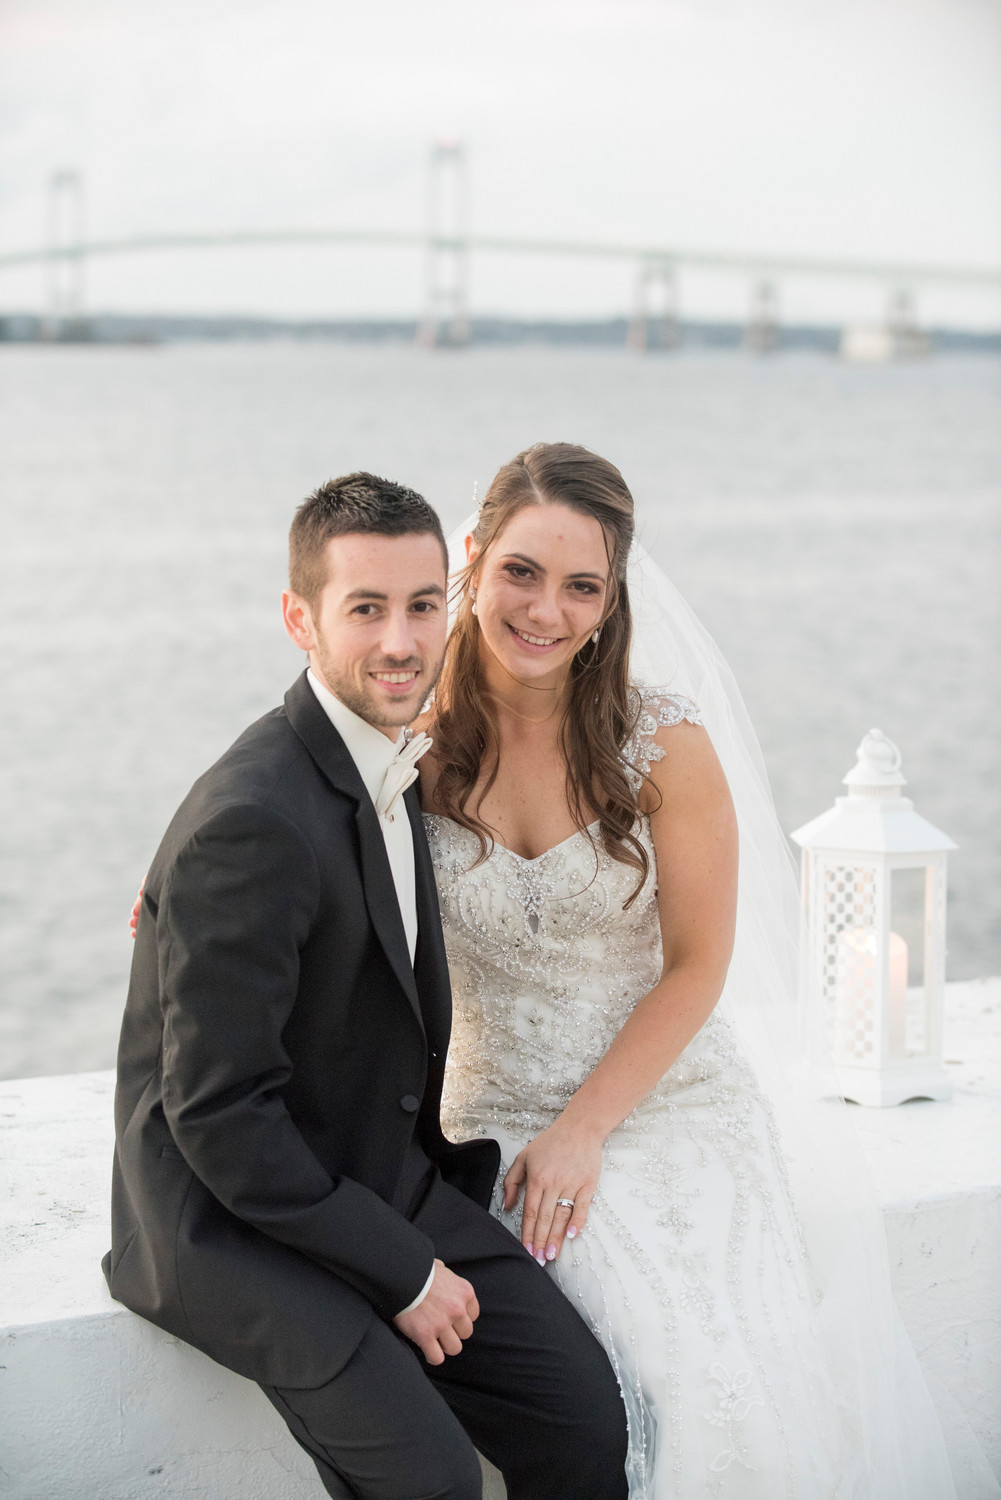 Lauren Judith Medeiros and Mark Anthony Forster, Jr. Marry